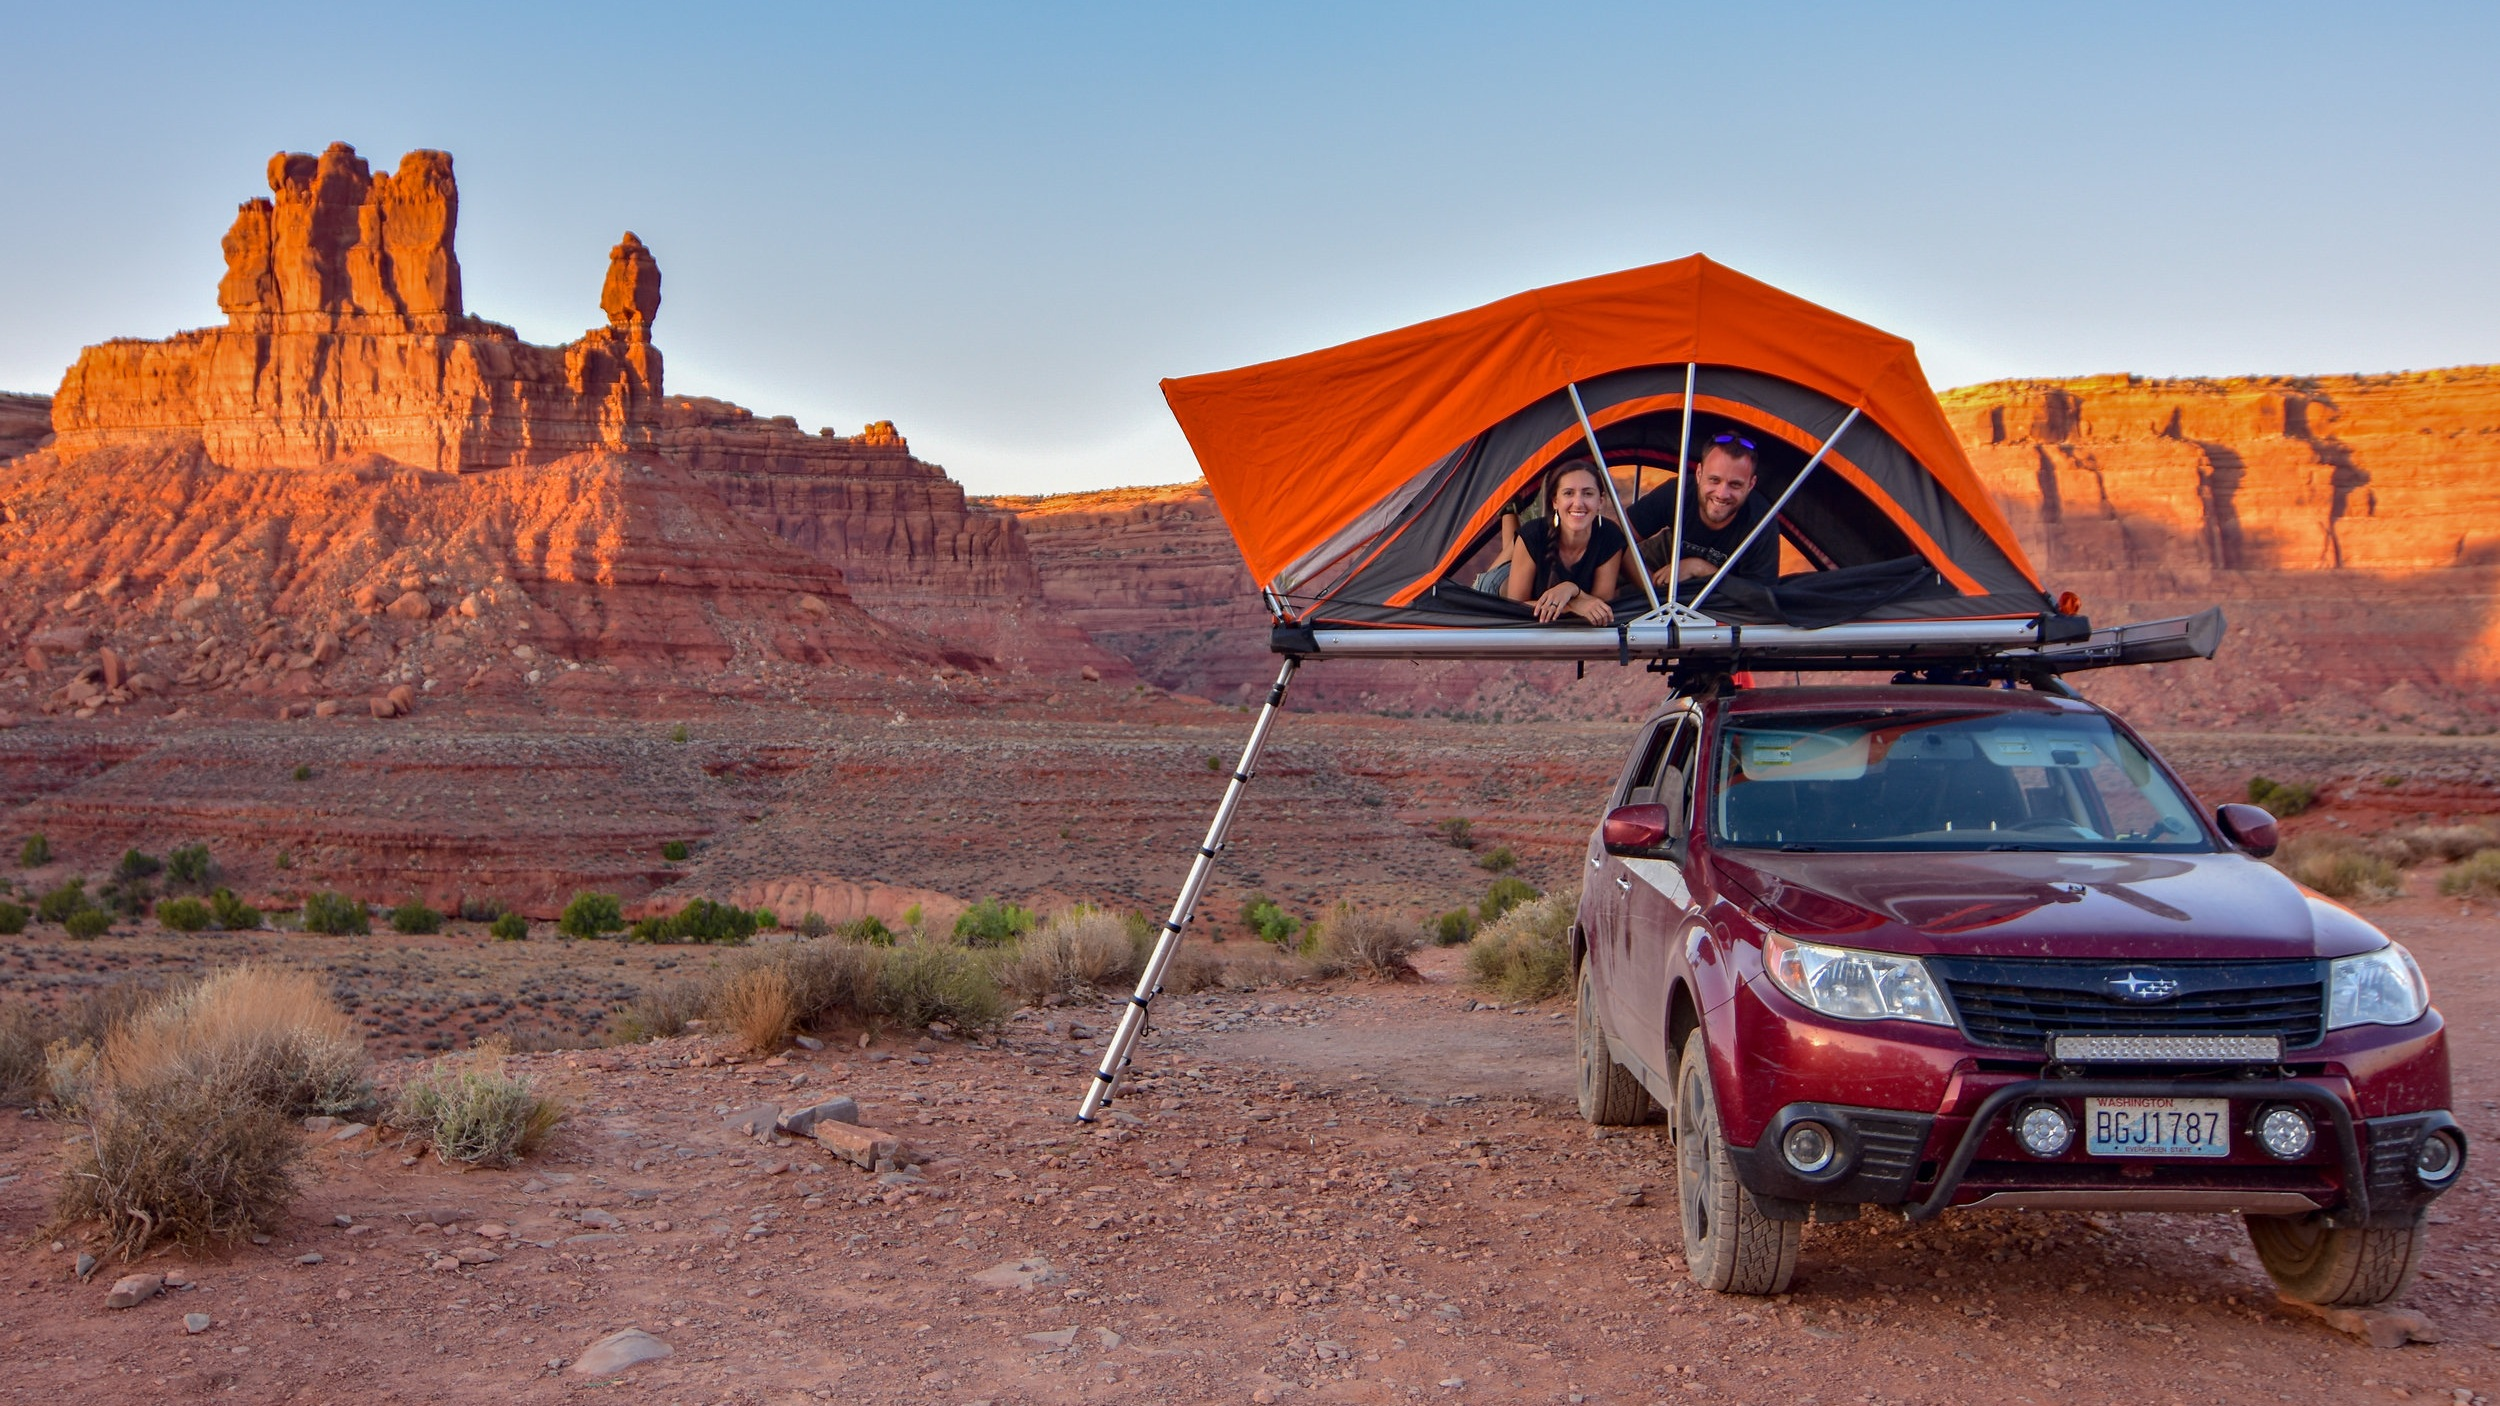 Road tripping around the US in our rooftop tent instead of flying to reduce our carbon footprint